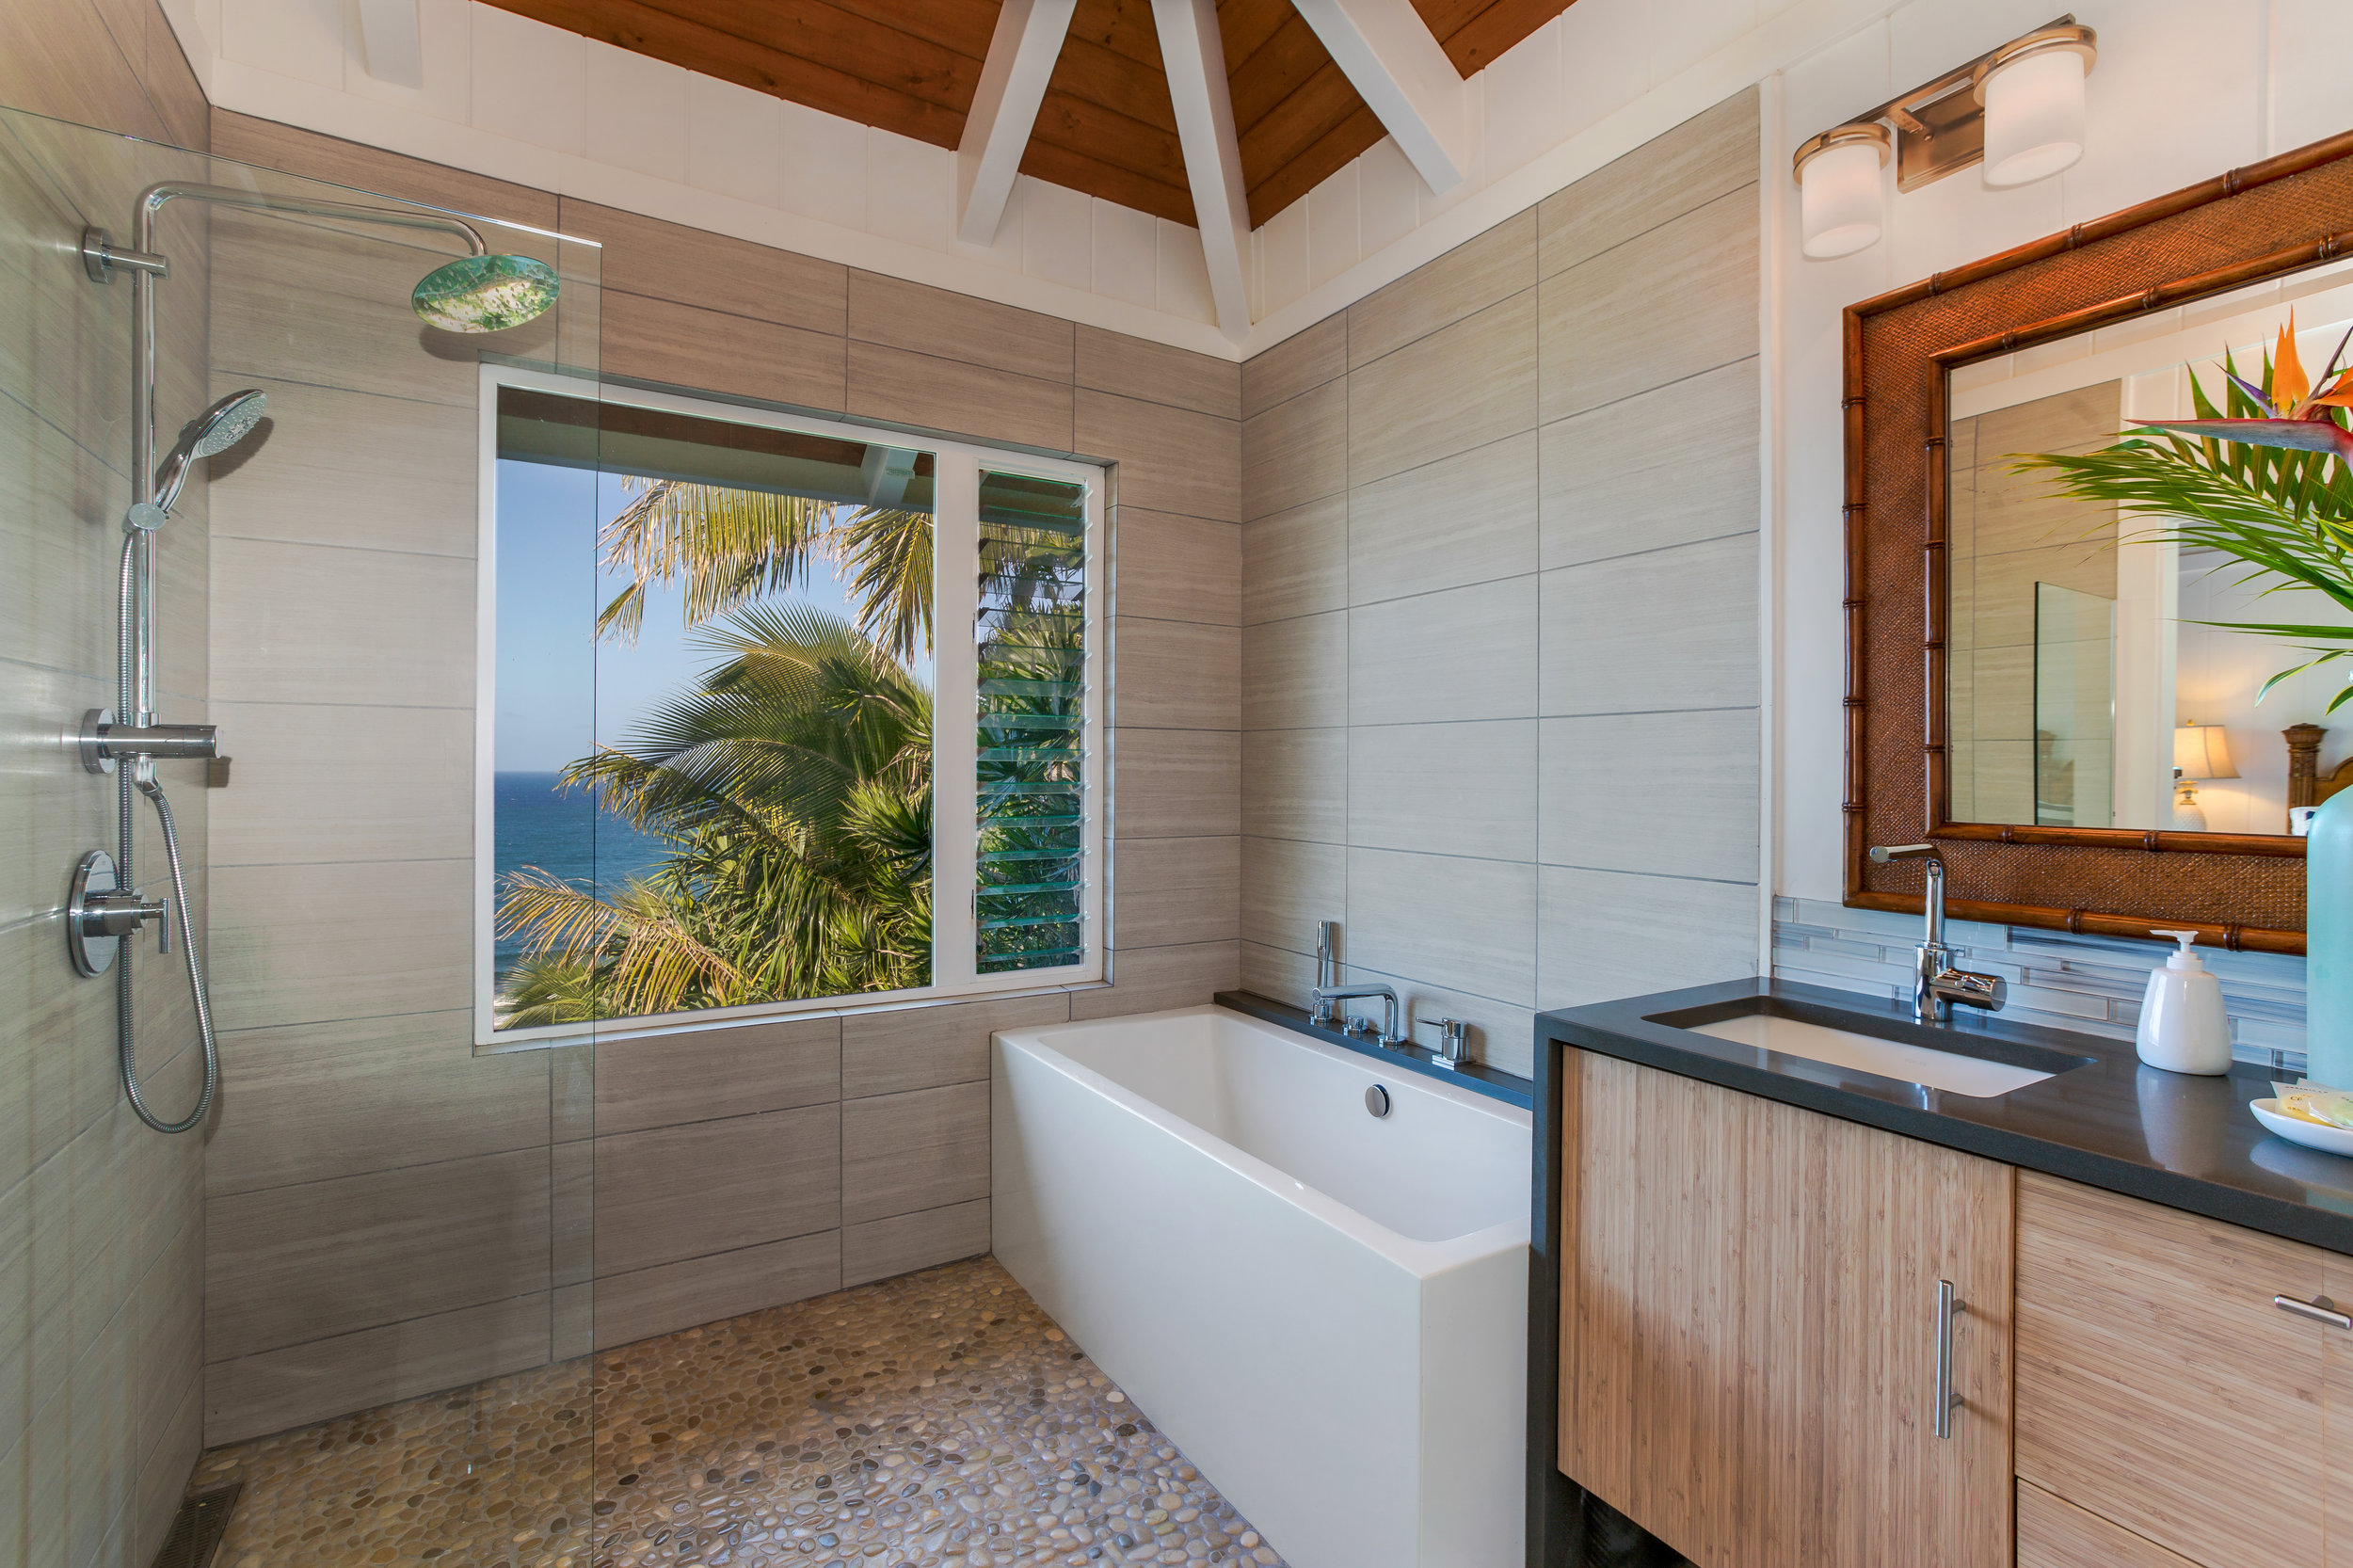 Ocean views, surf sounds and trade wind breezes for your bathing pleasure.